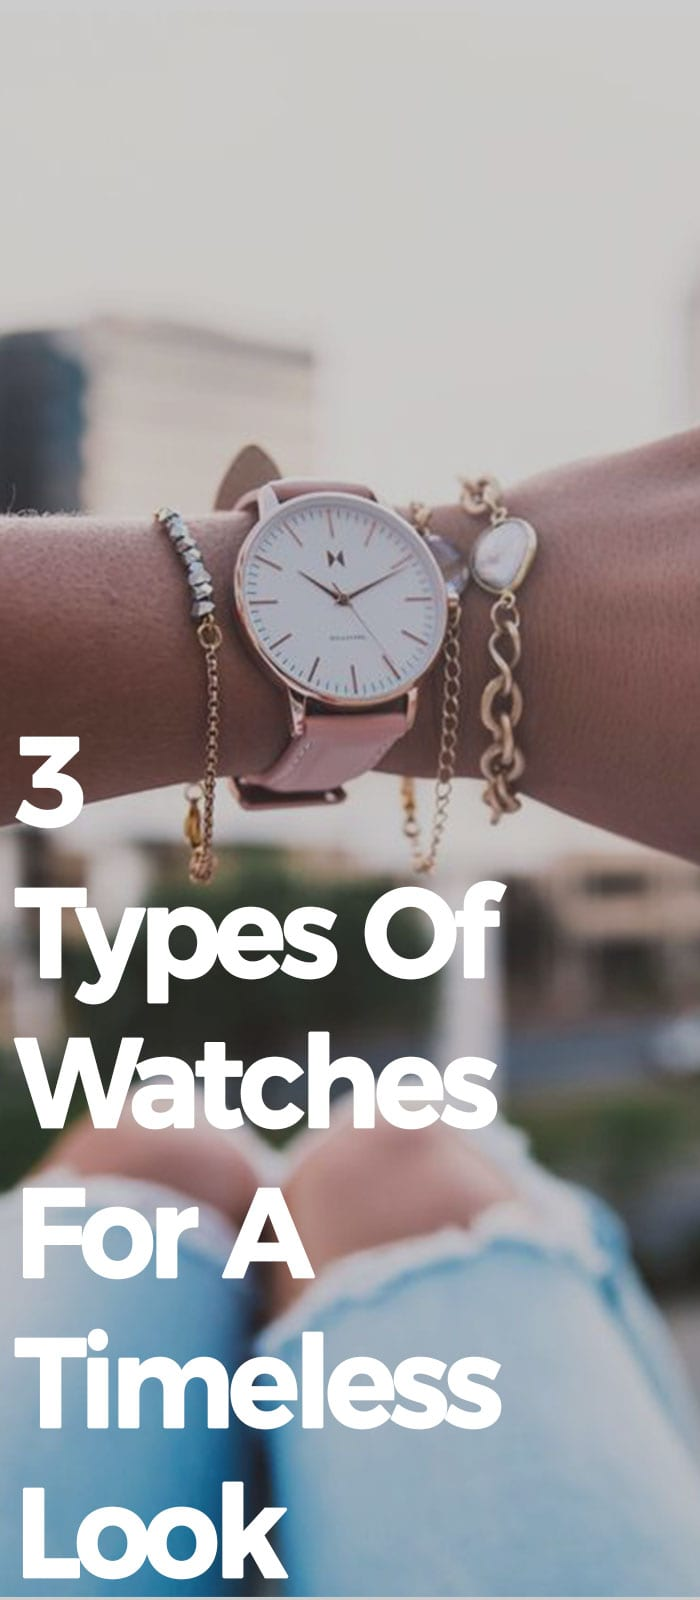 3 Types Of Watch For A Timeless Look